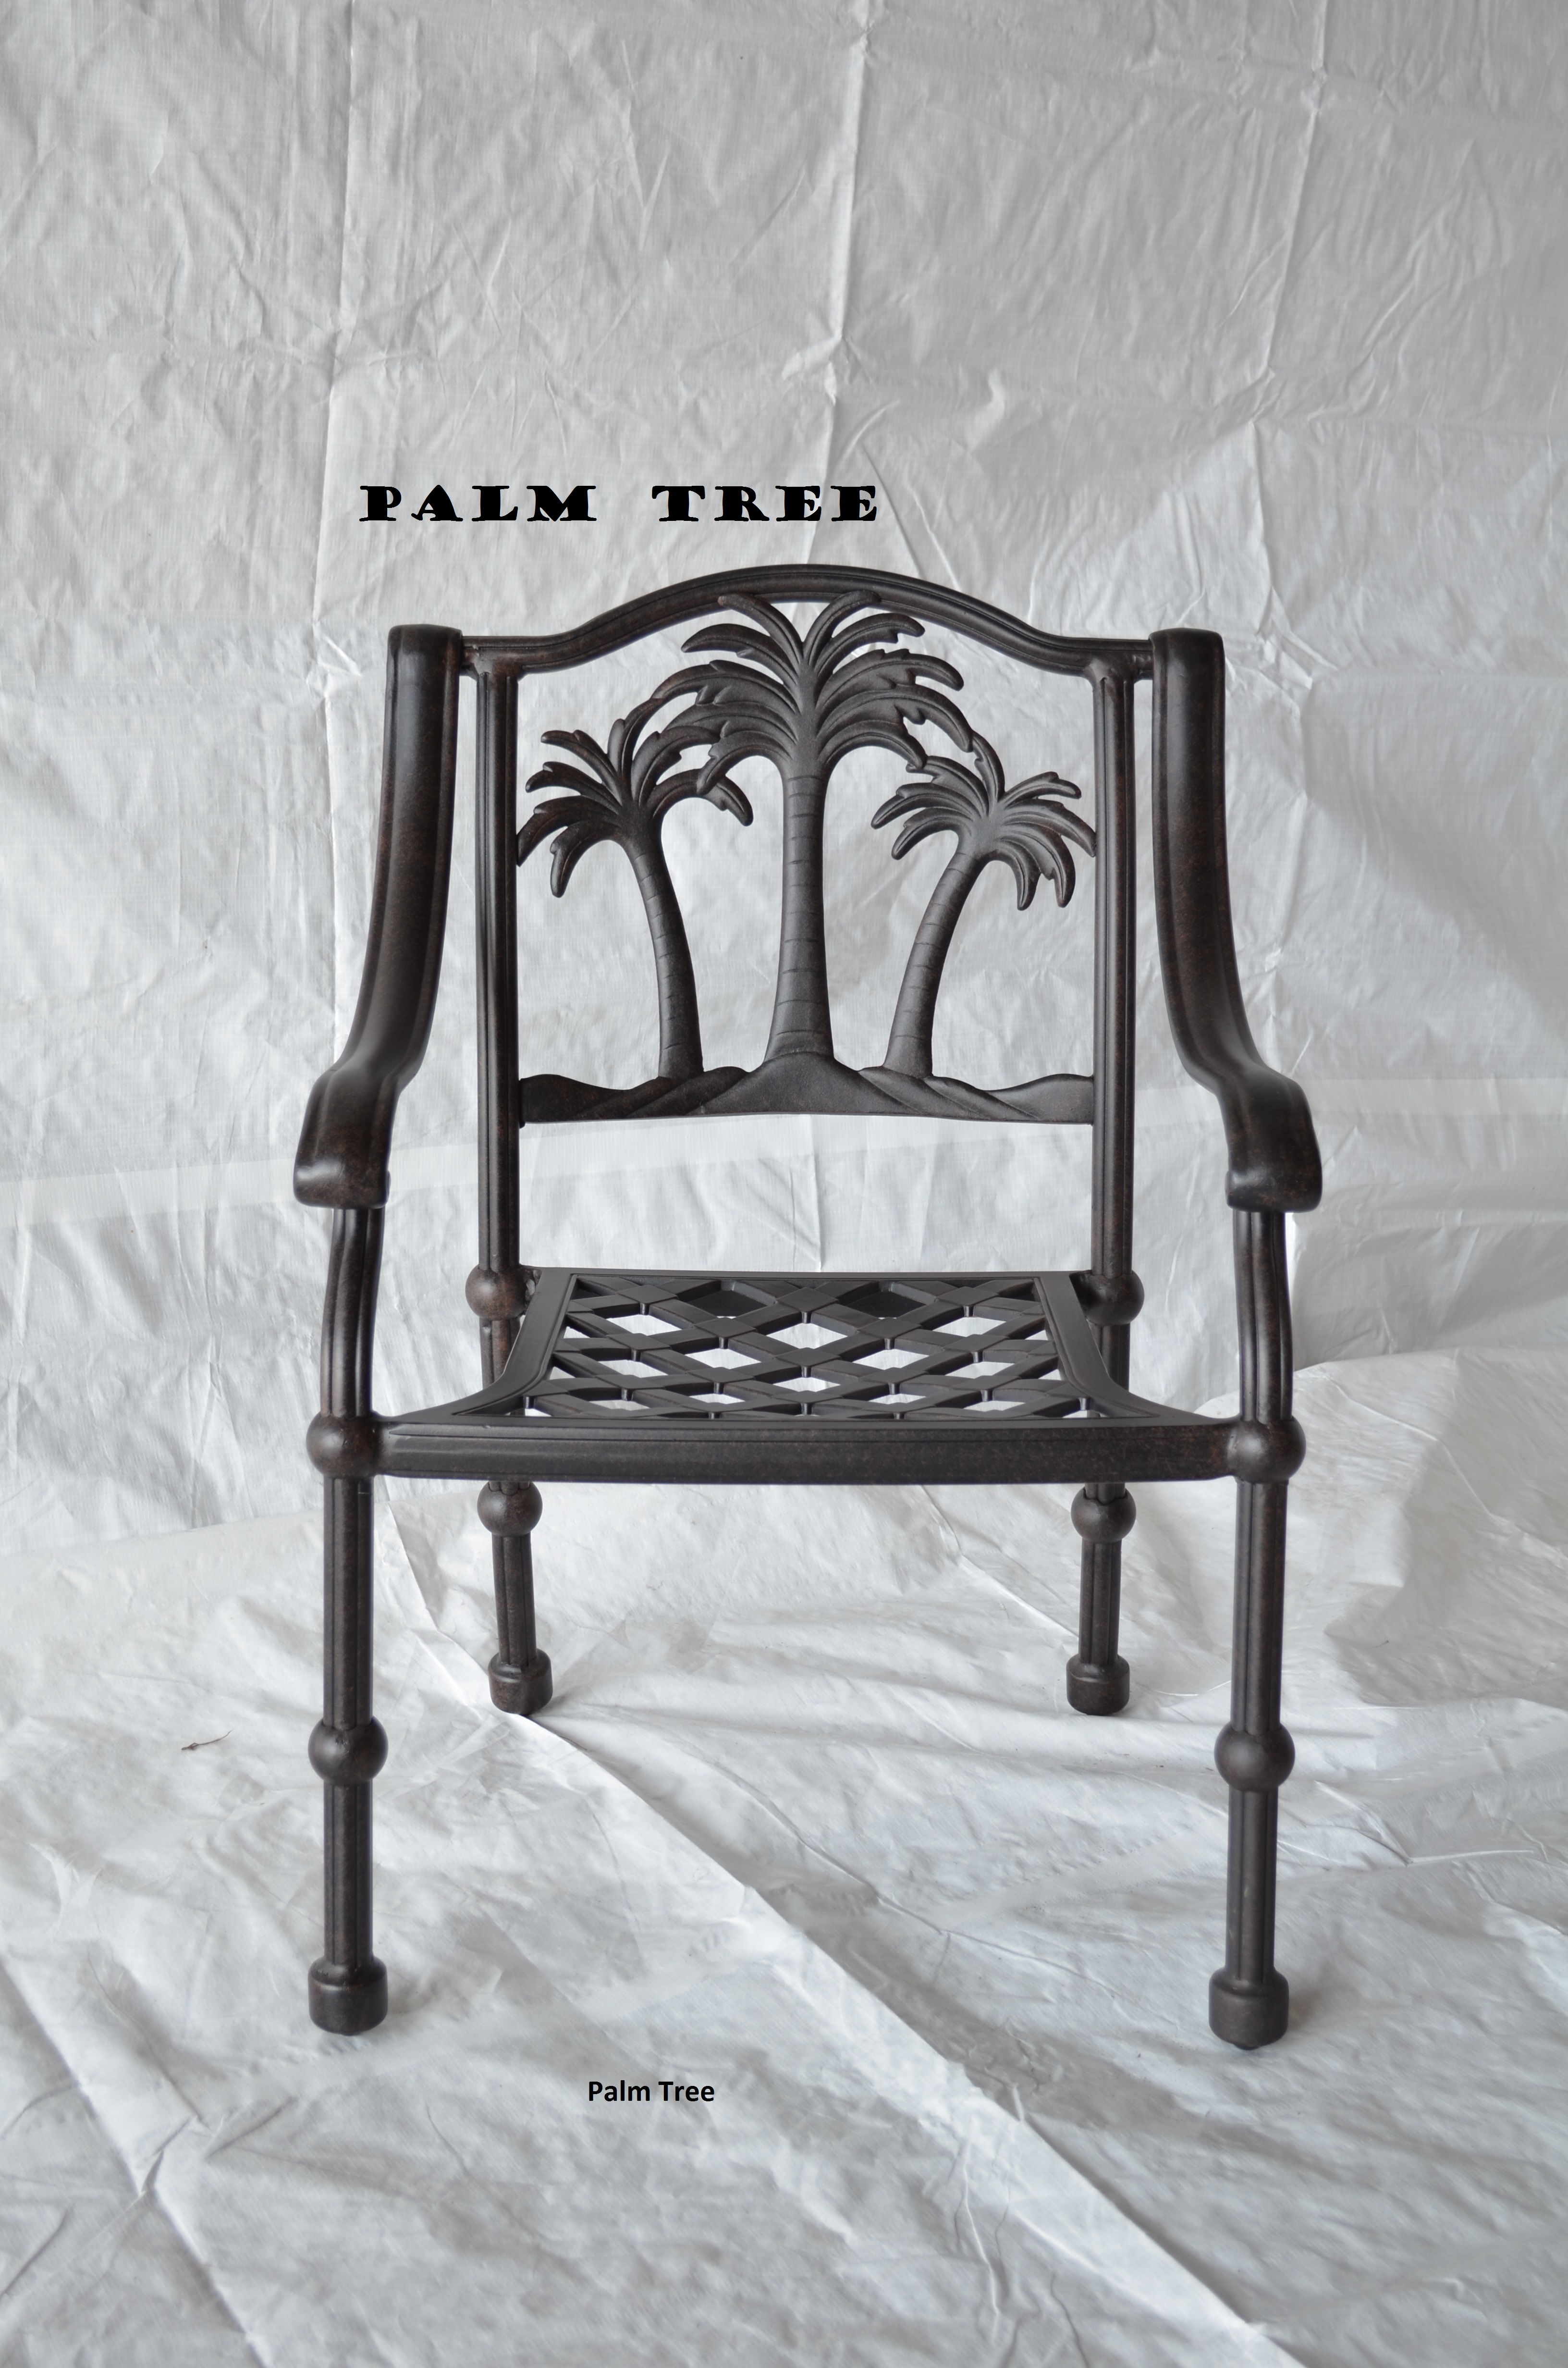 Palm tree Dining Set 2arm chairs 52 Round table with ice bucket